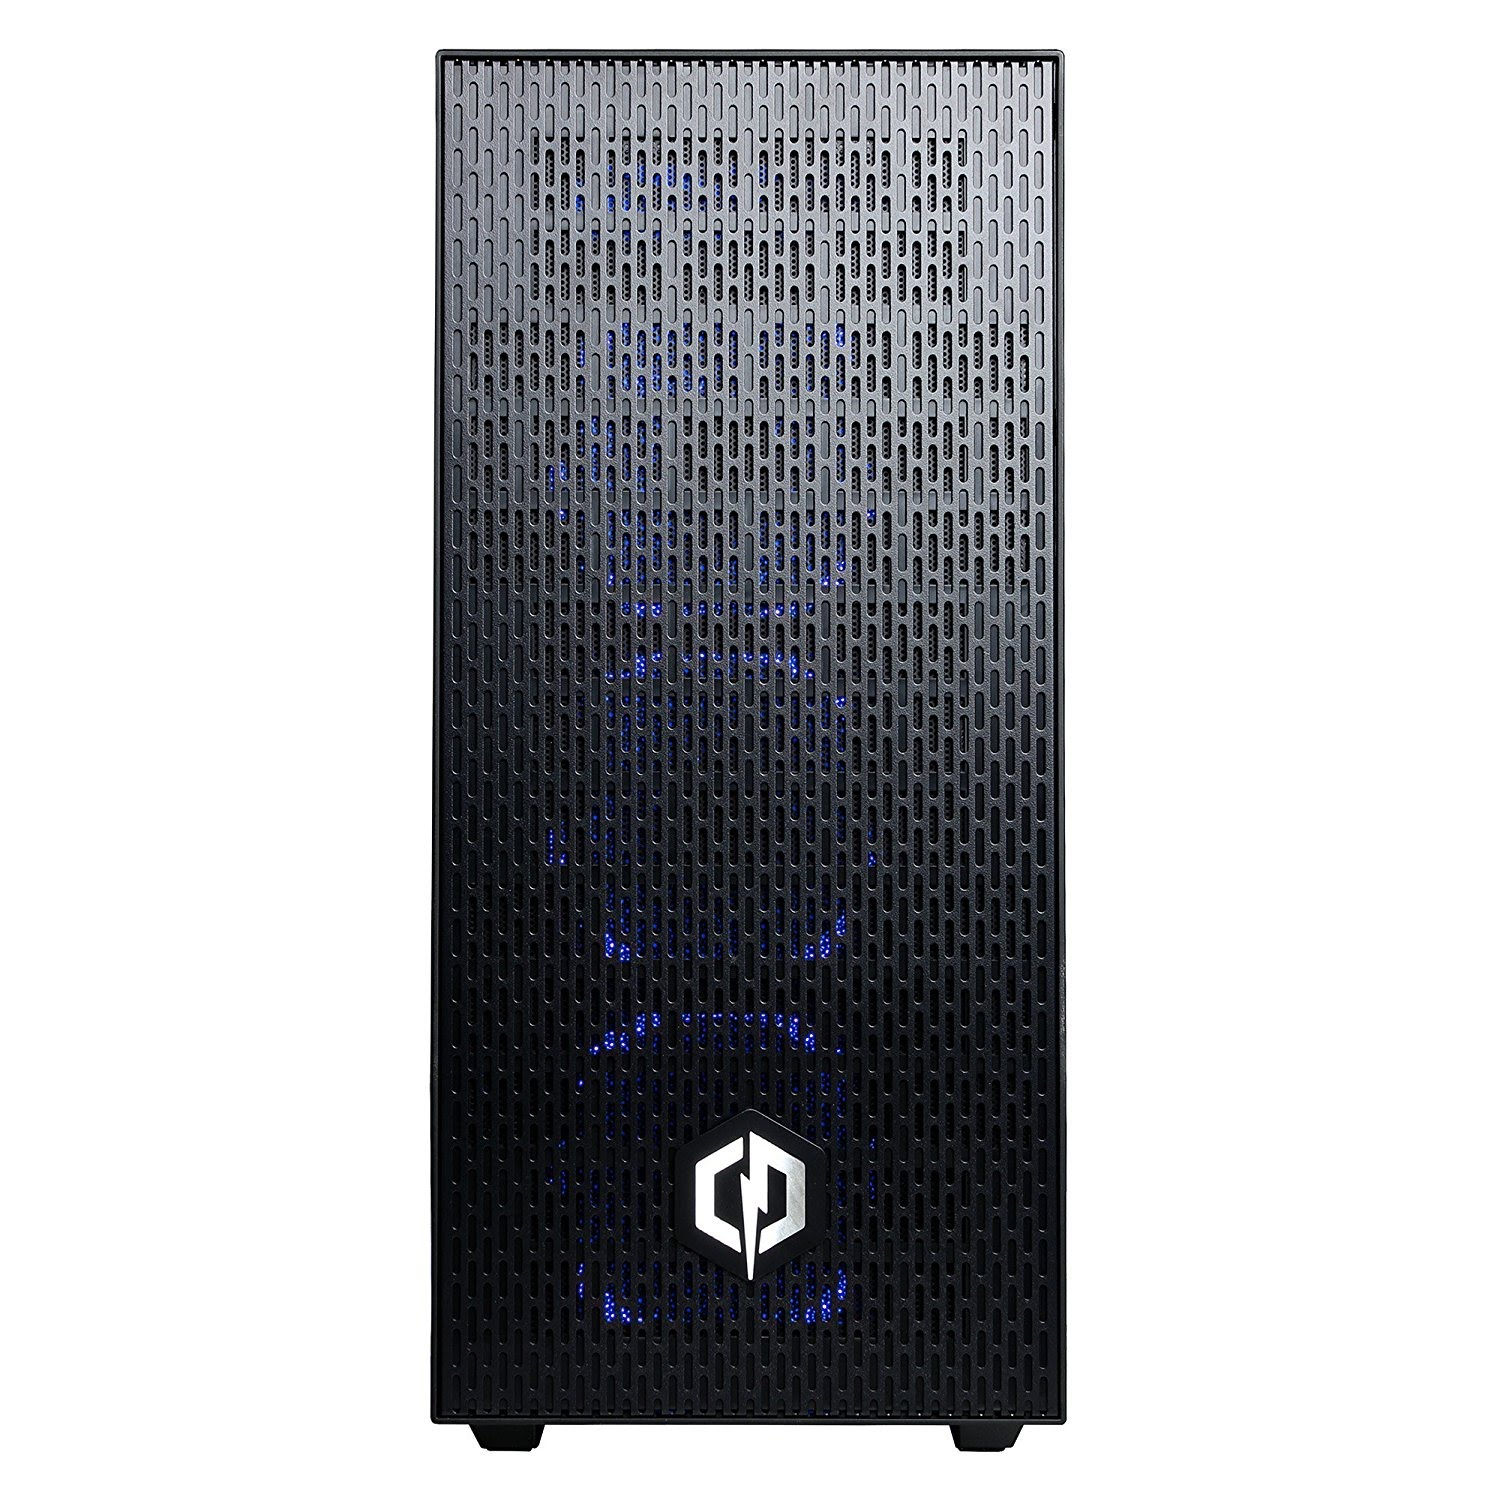 See view more full features & details + See price details. (At Amazon.com). System: AMD Ryzen 3 2200G ...